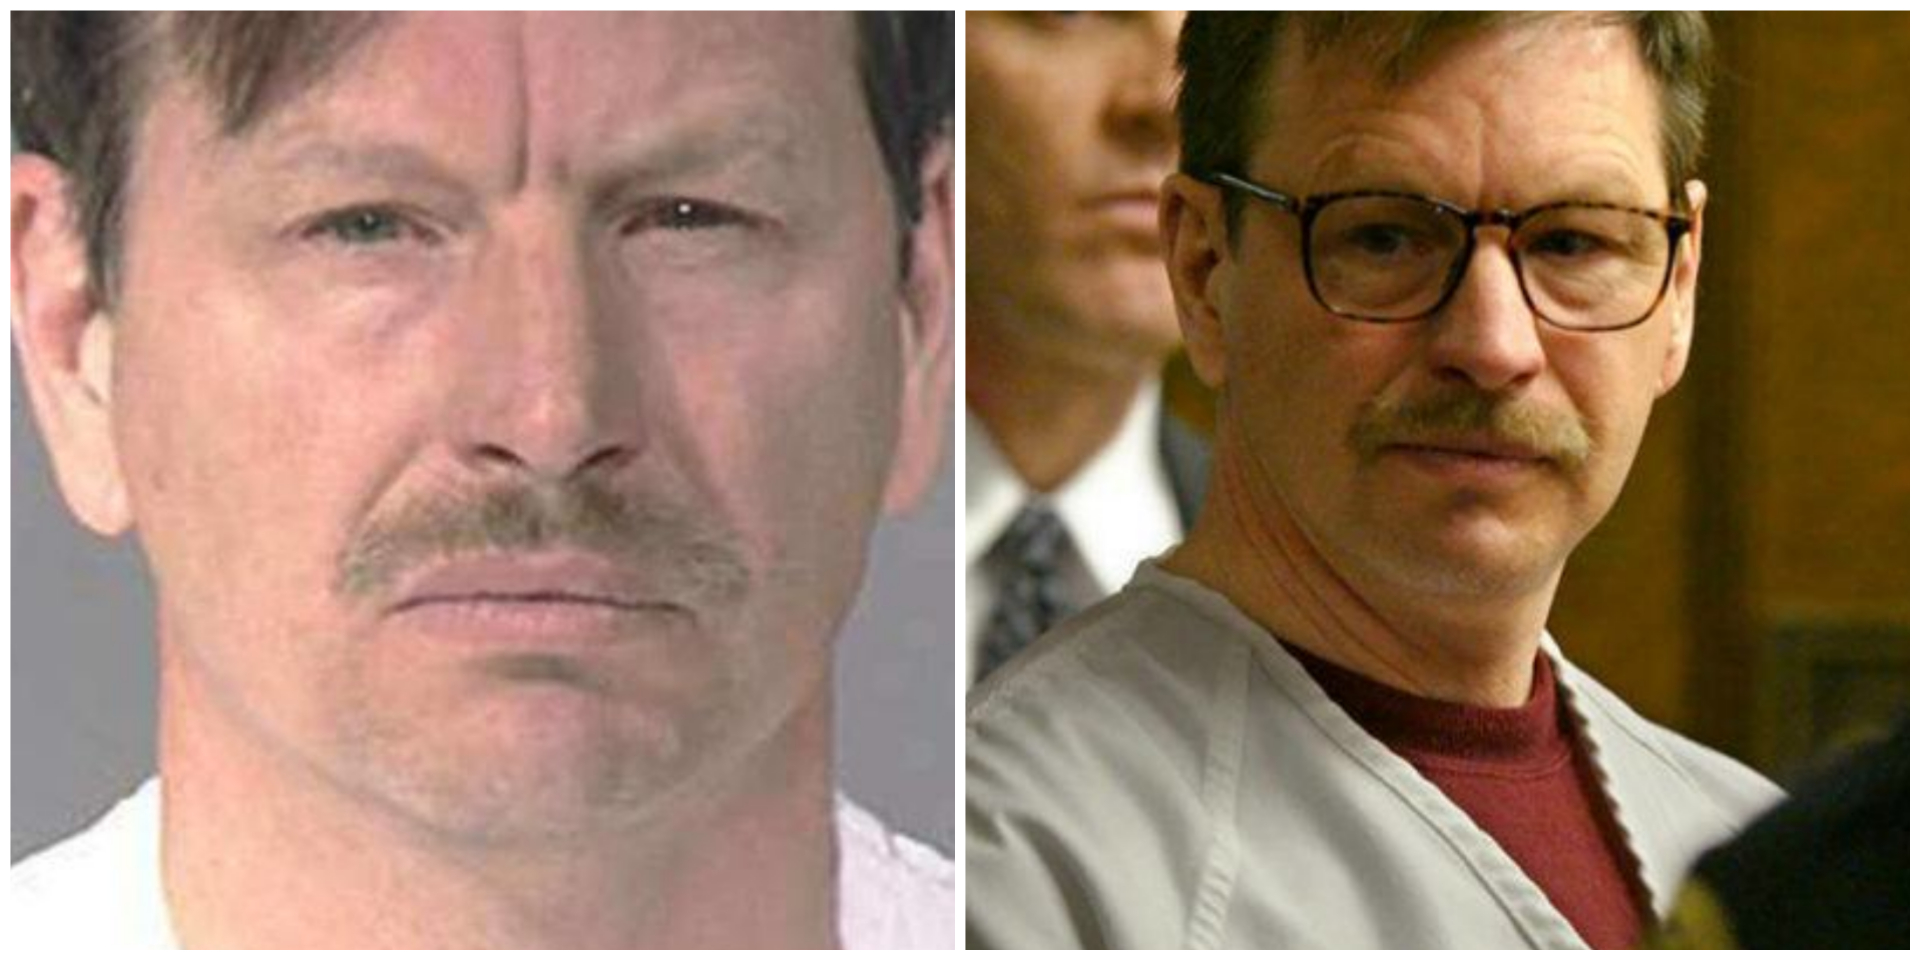 How Ted Bundy Helped Catch America's Worst Serial Killer, Gary Ridgway